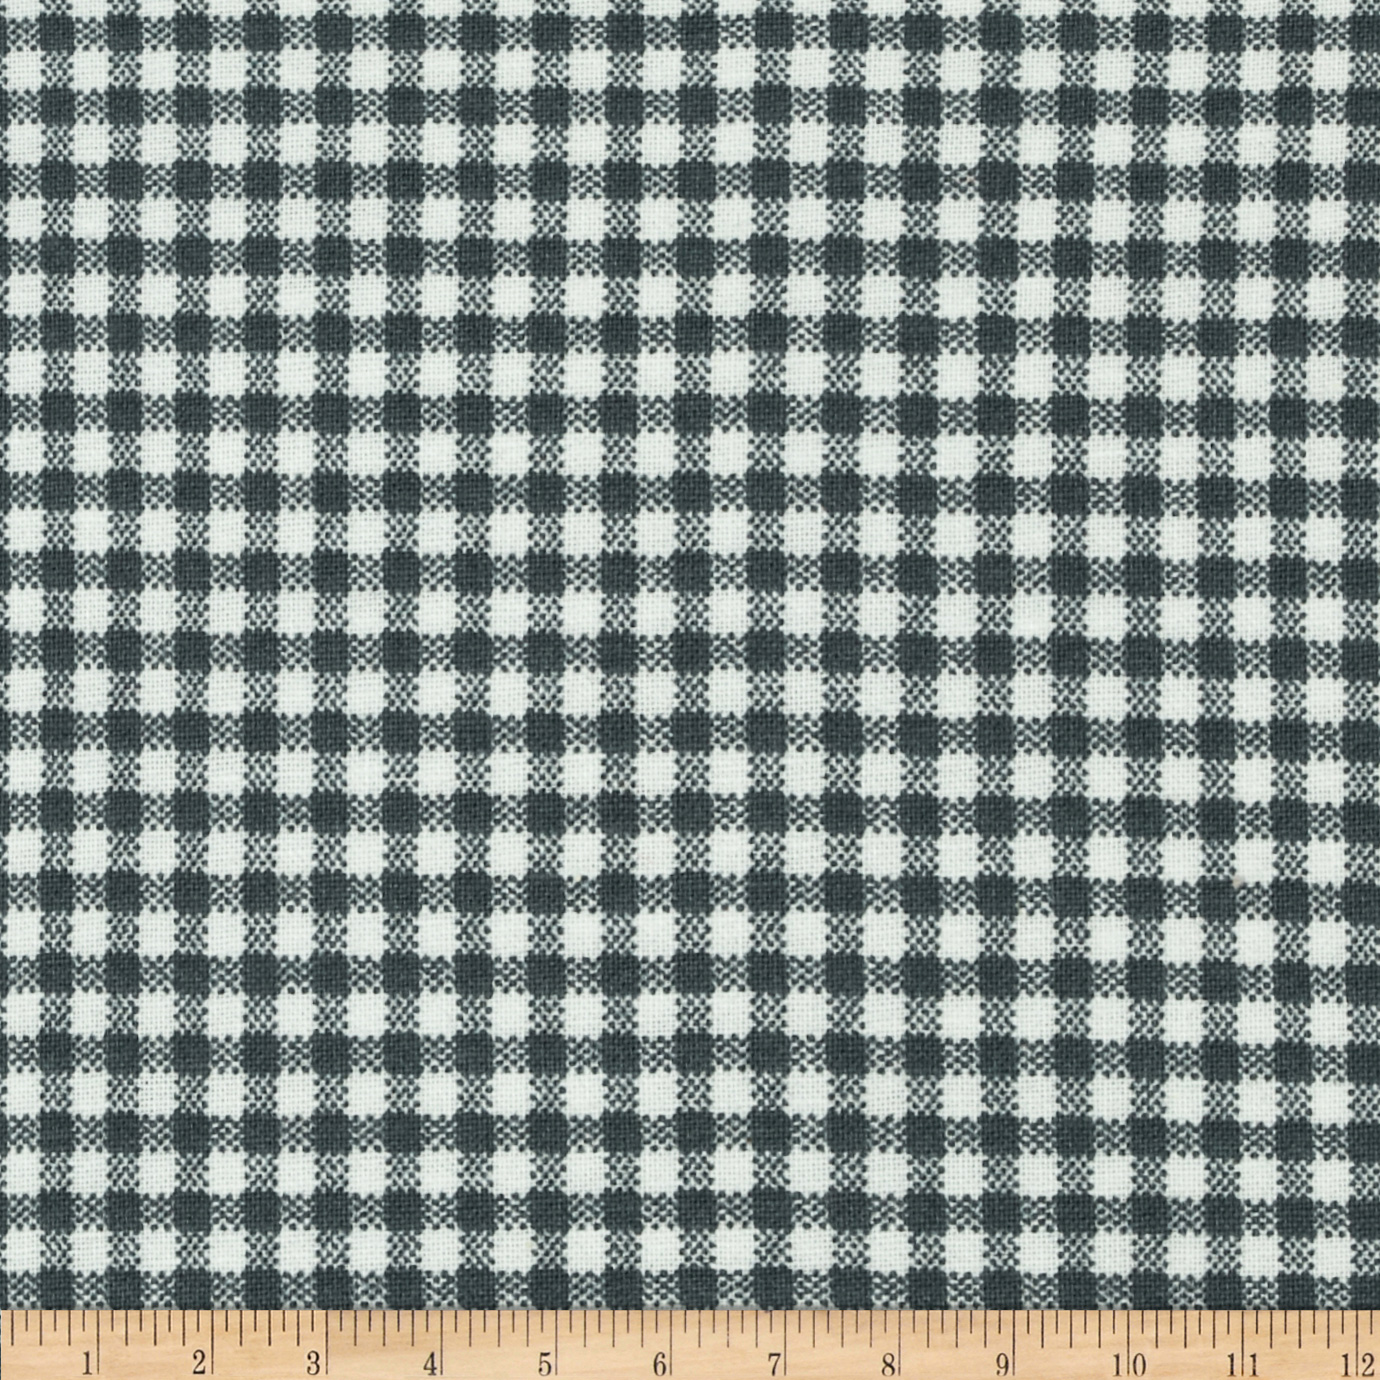 Basic Training Small Gingham Grey/White Fabric by Santee in USA